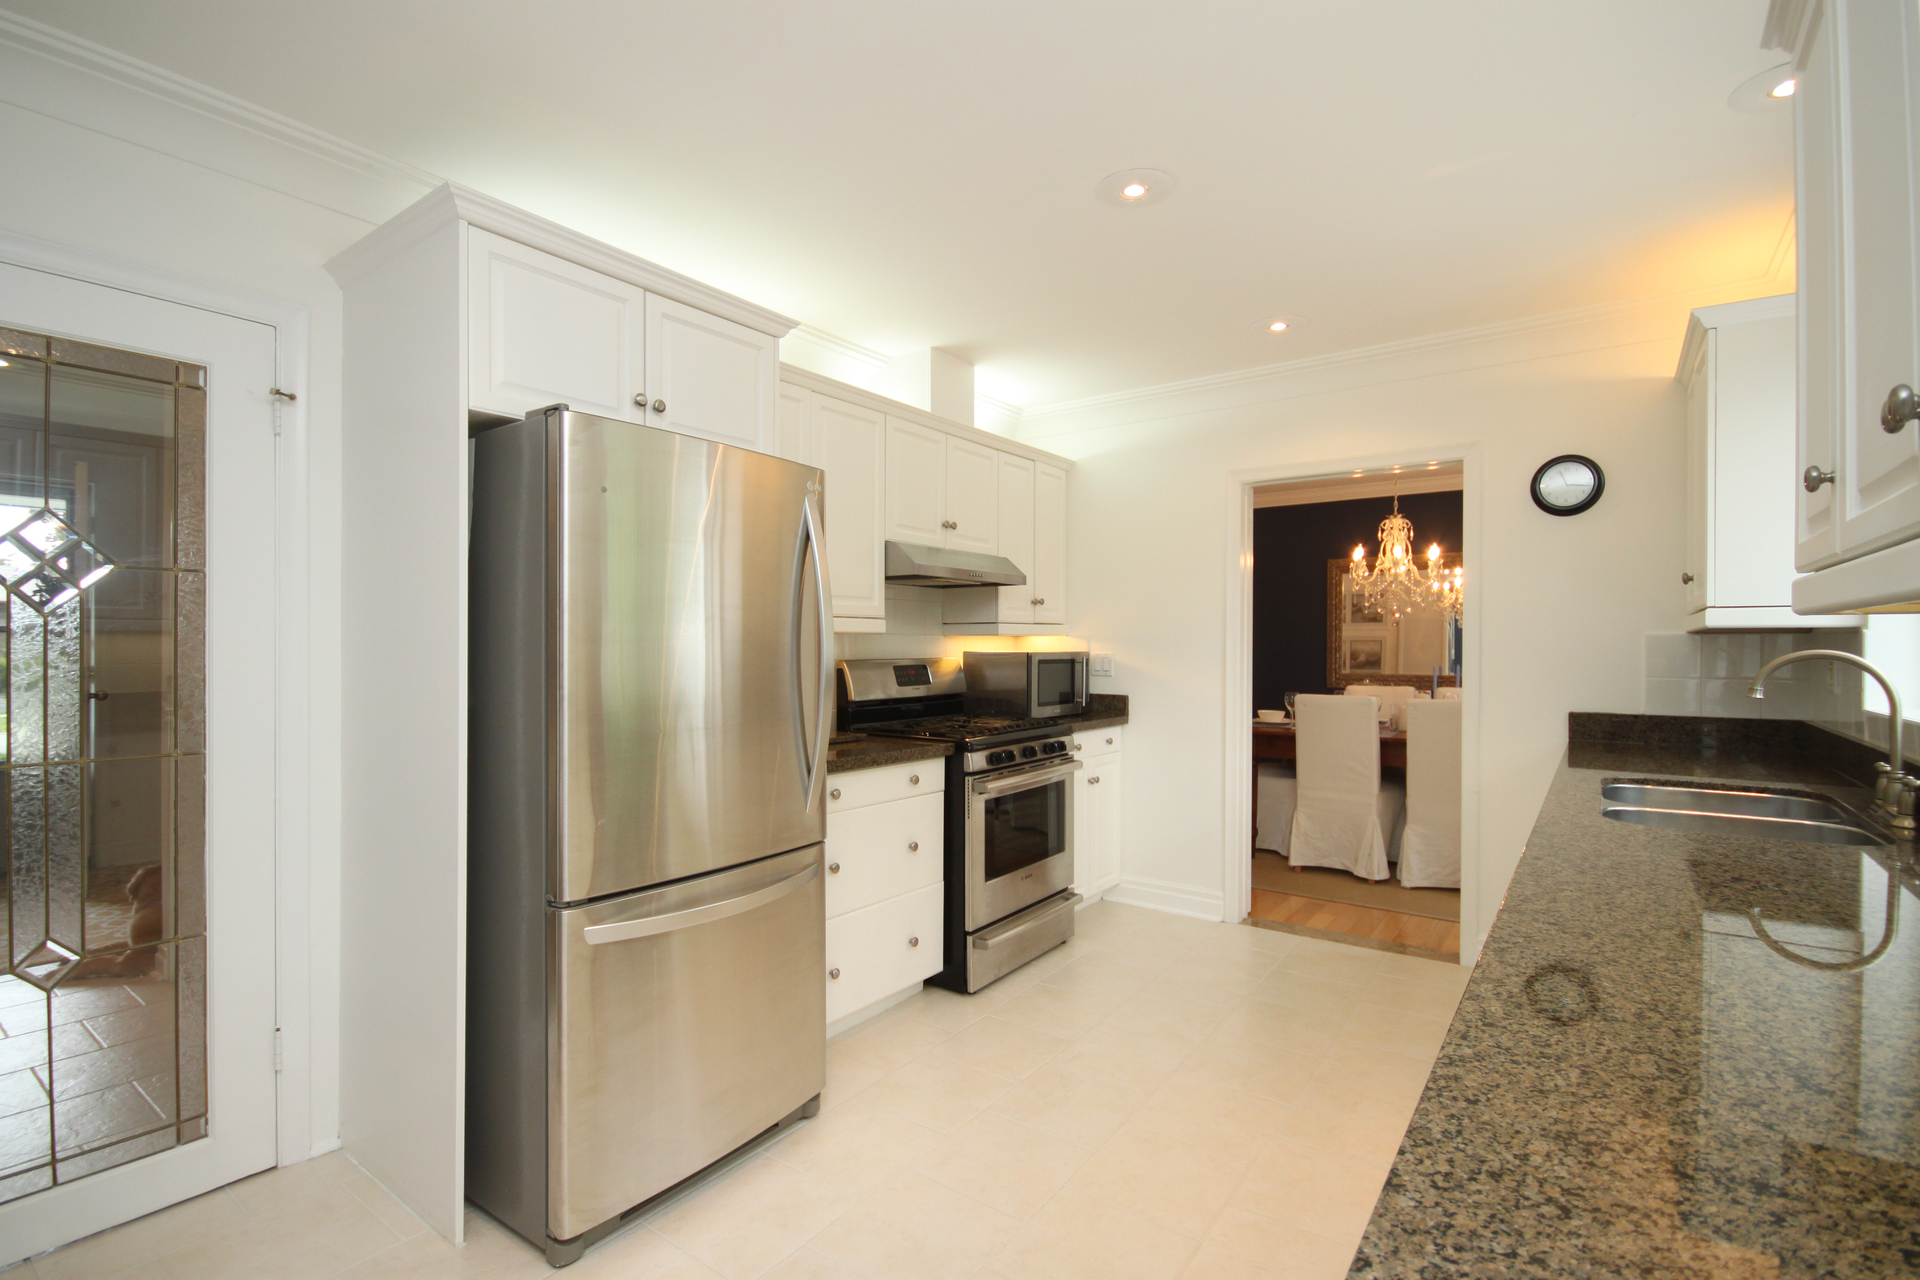 Kitchen at 6 Stubbs Drive, St. Andrew-Windfields, Toronto